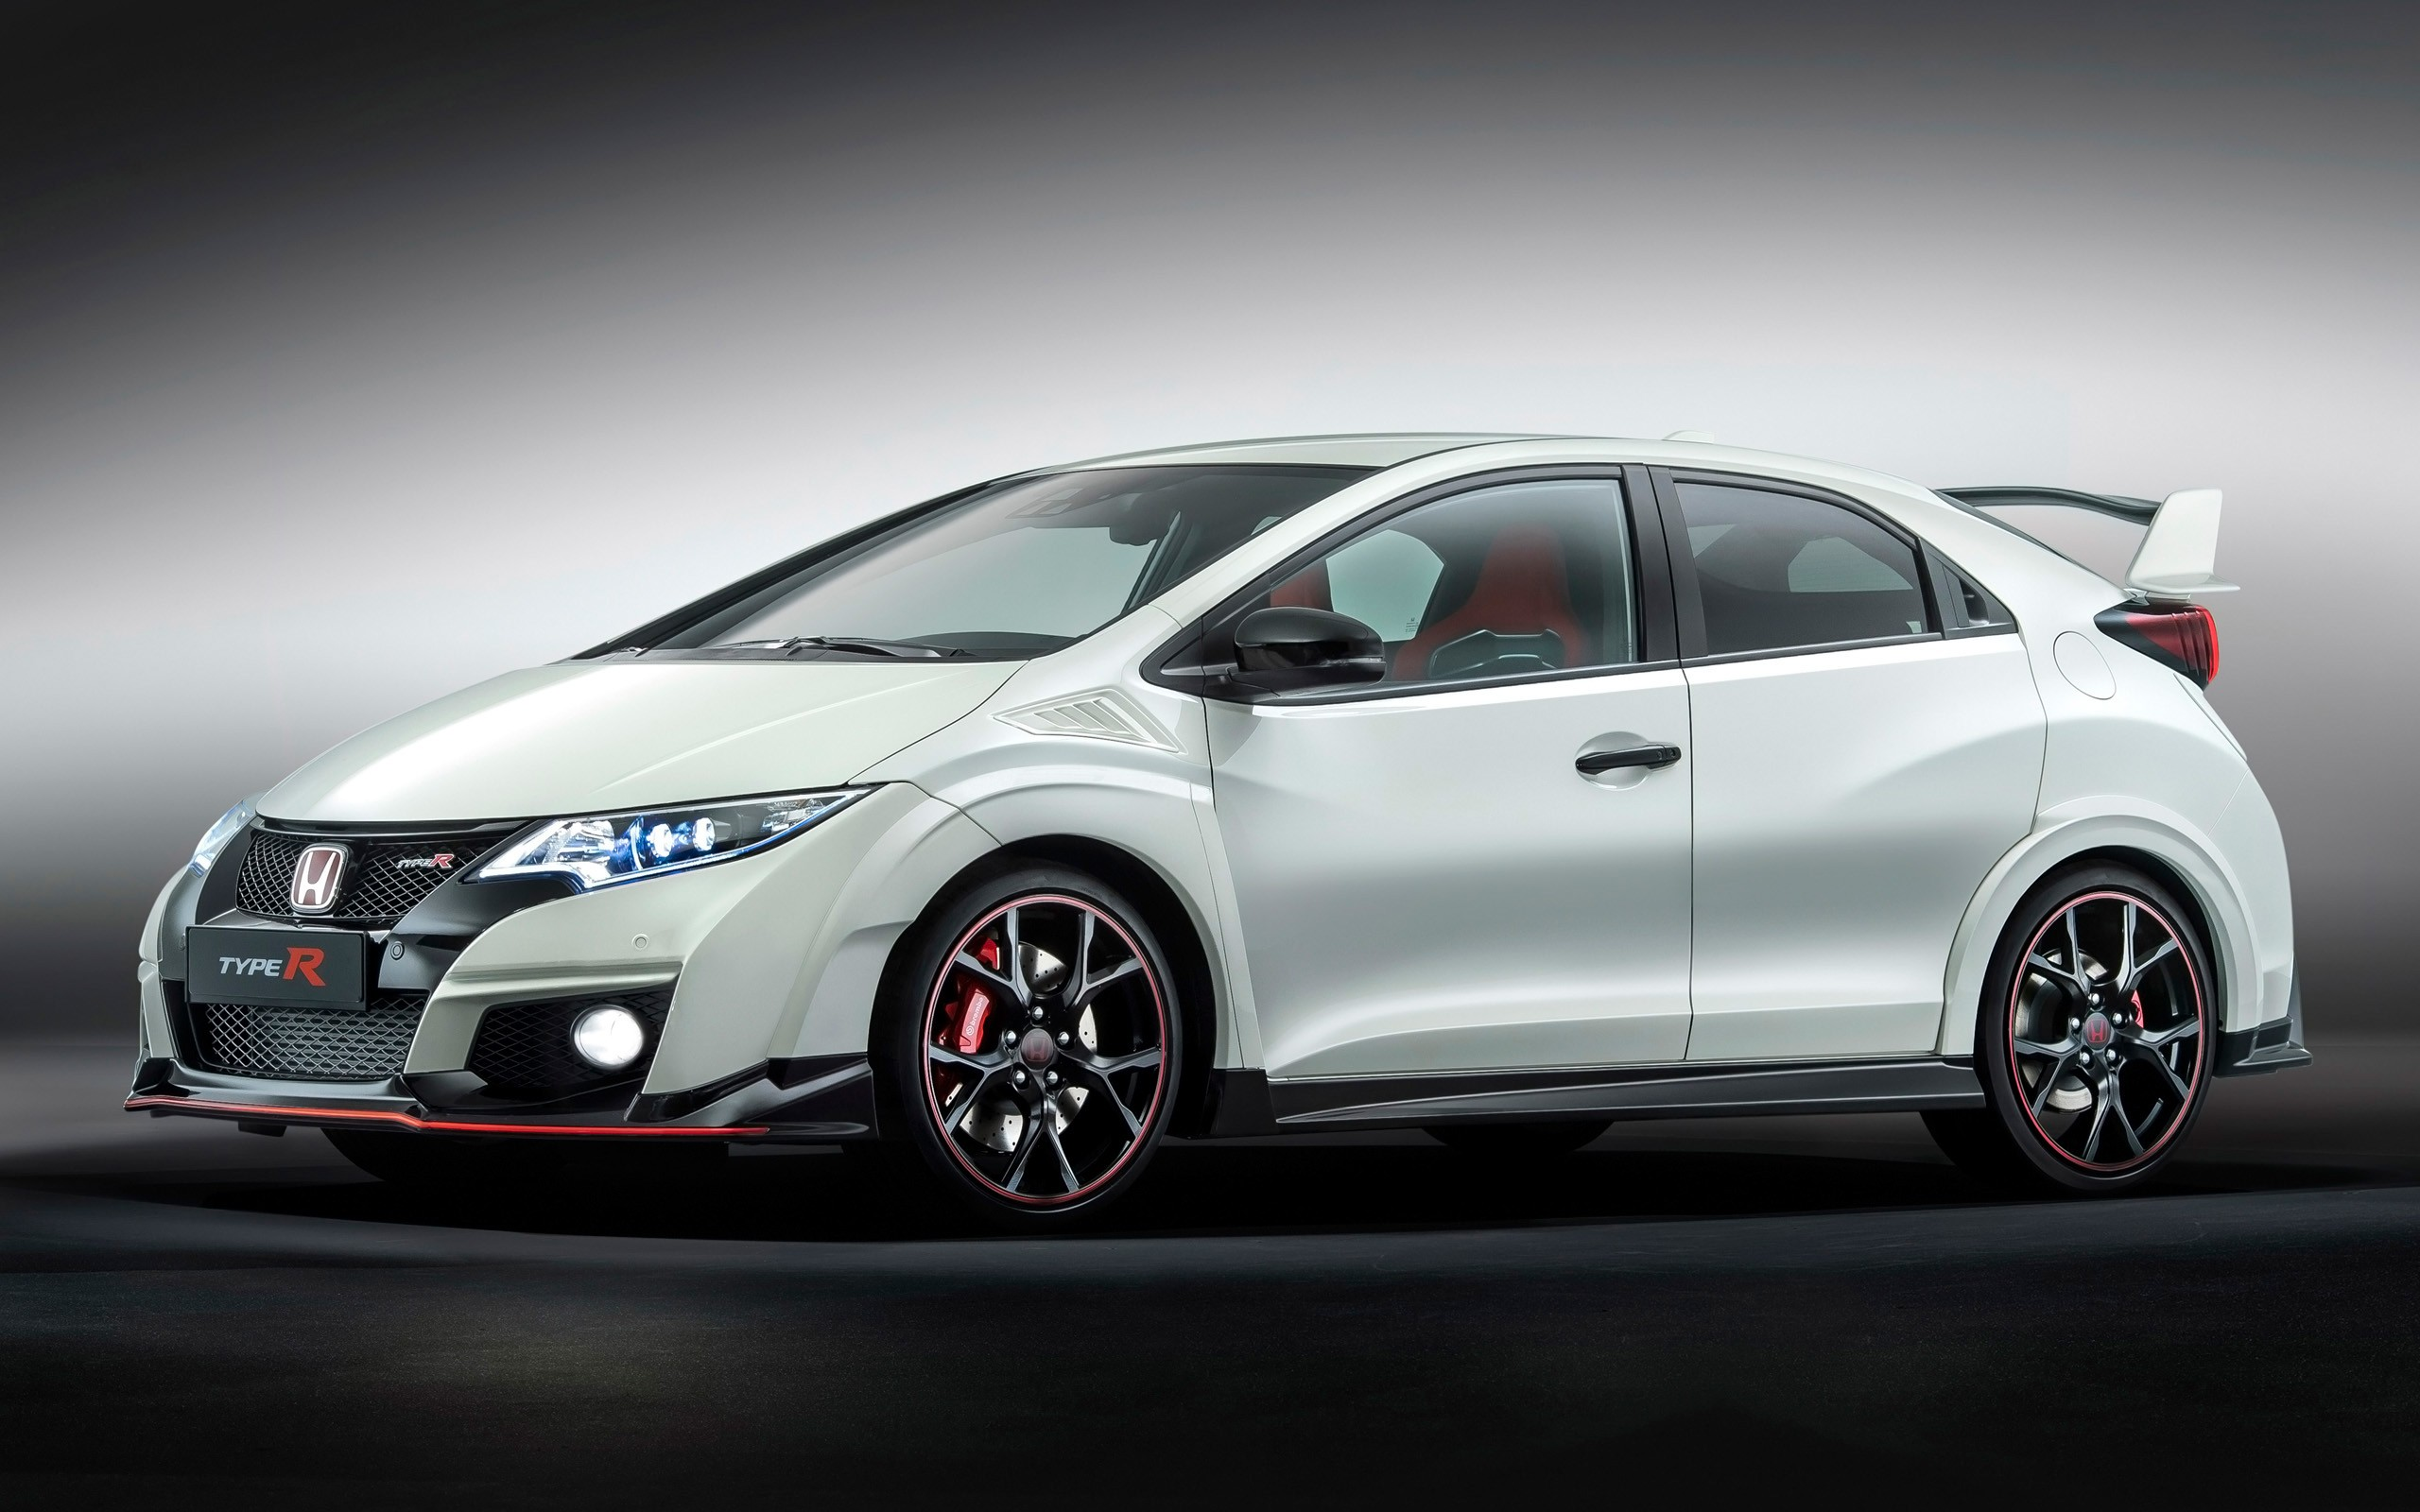 2015 honda civic type r wallpaper hd car wallpapers id. Black Bedroom Furniture Sets. Home Design Ideas